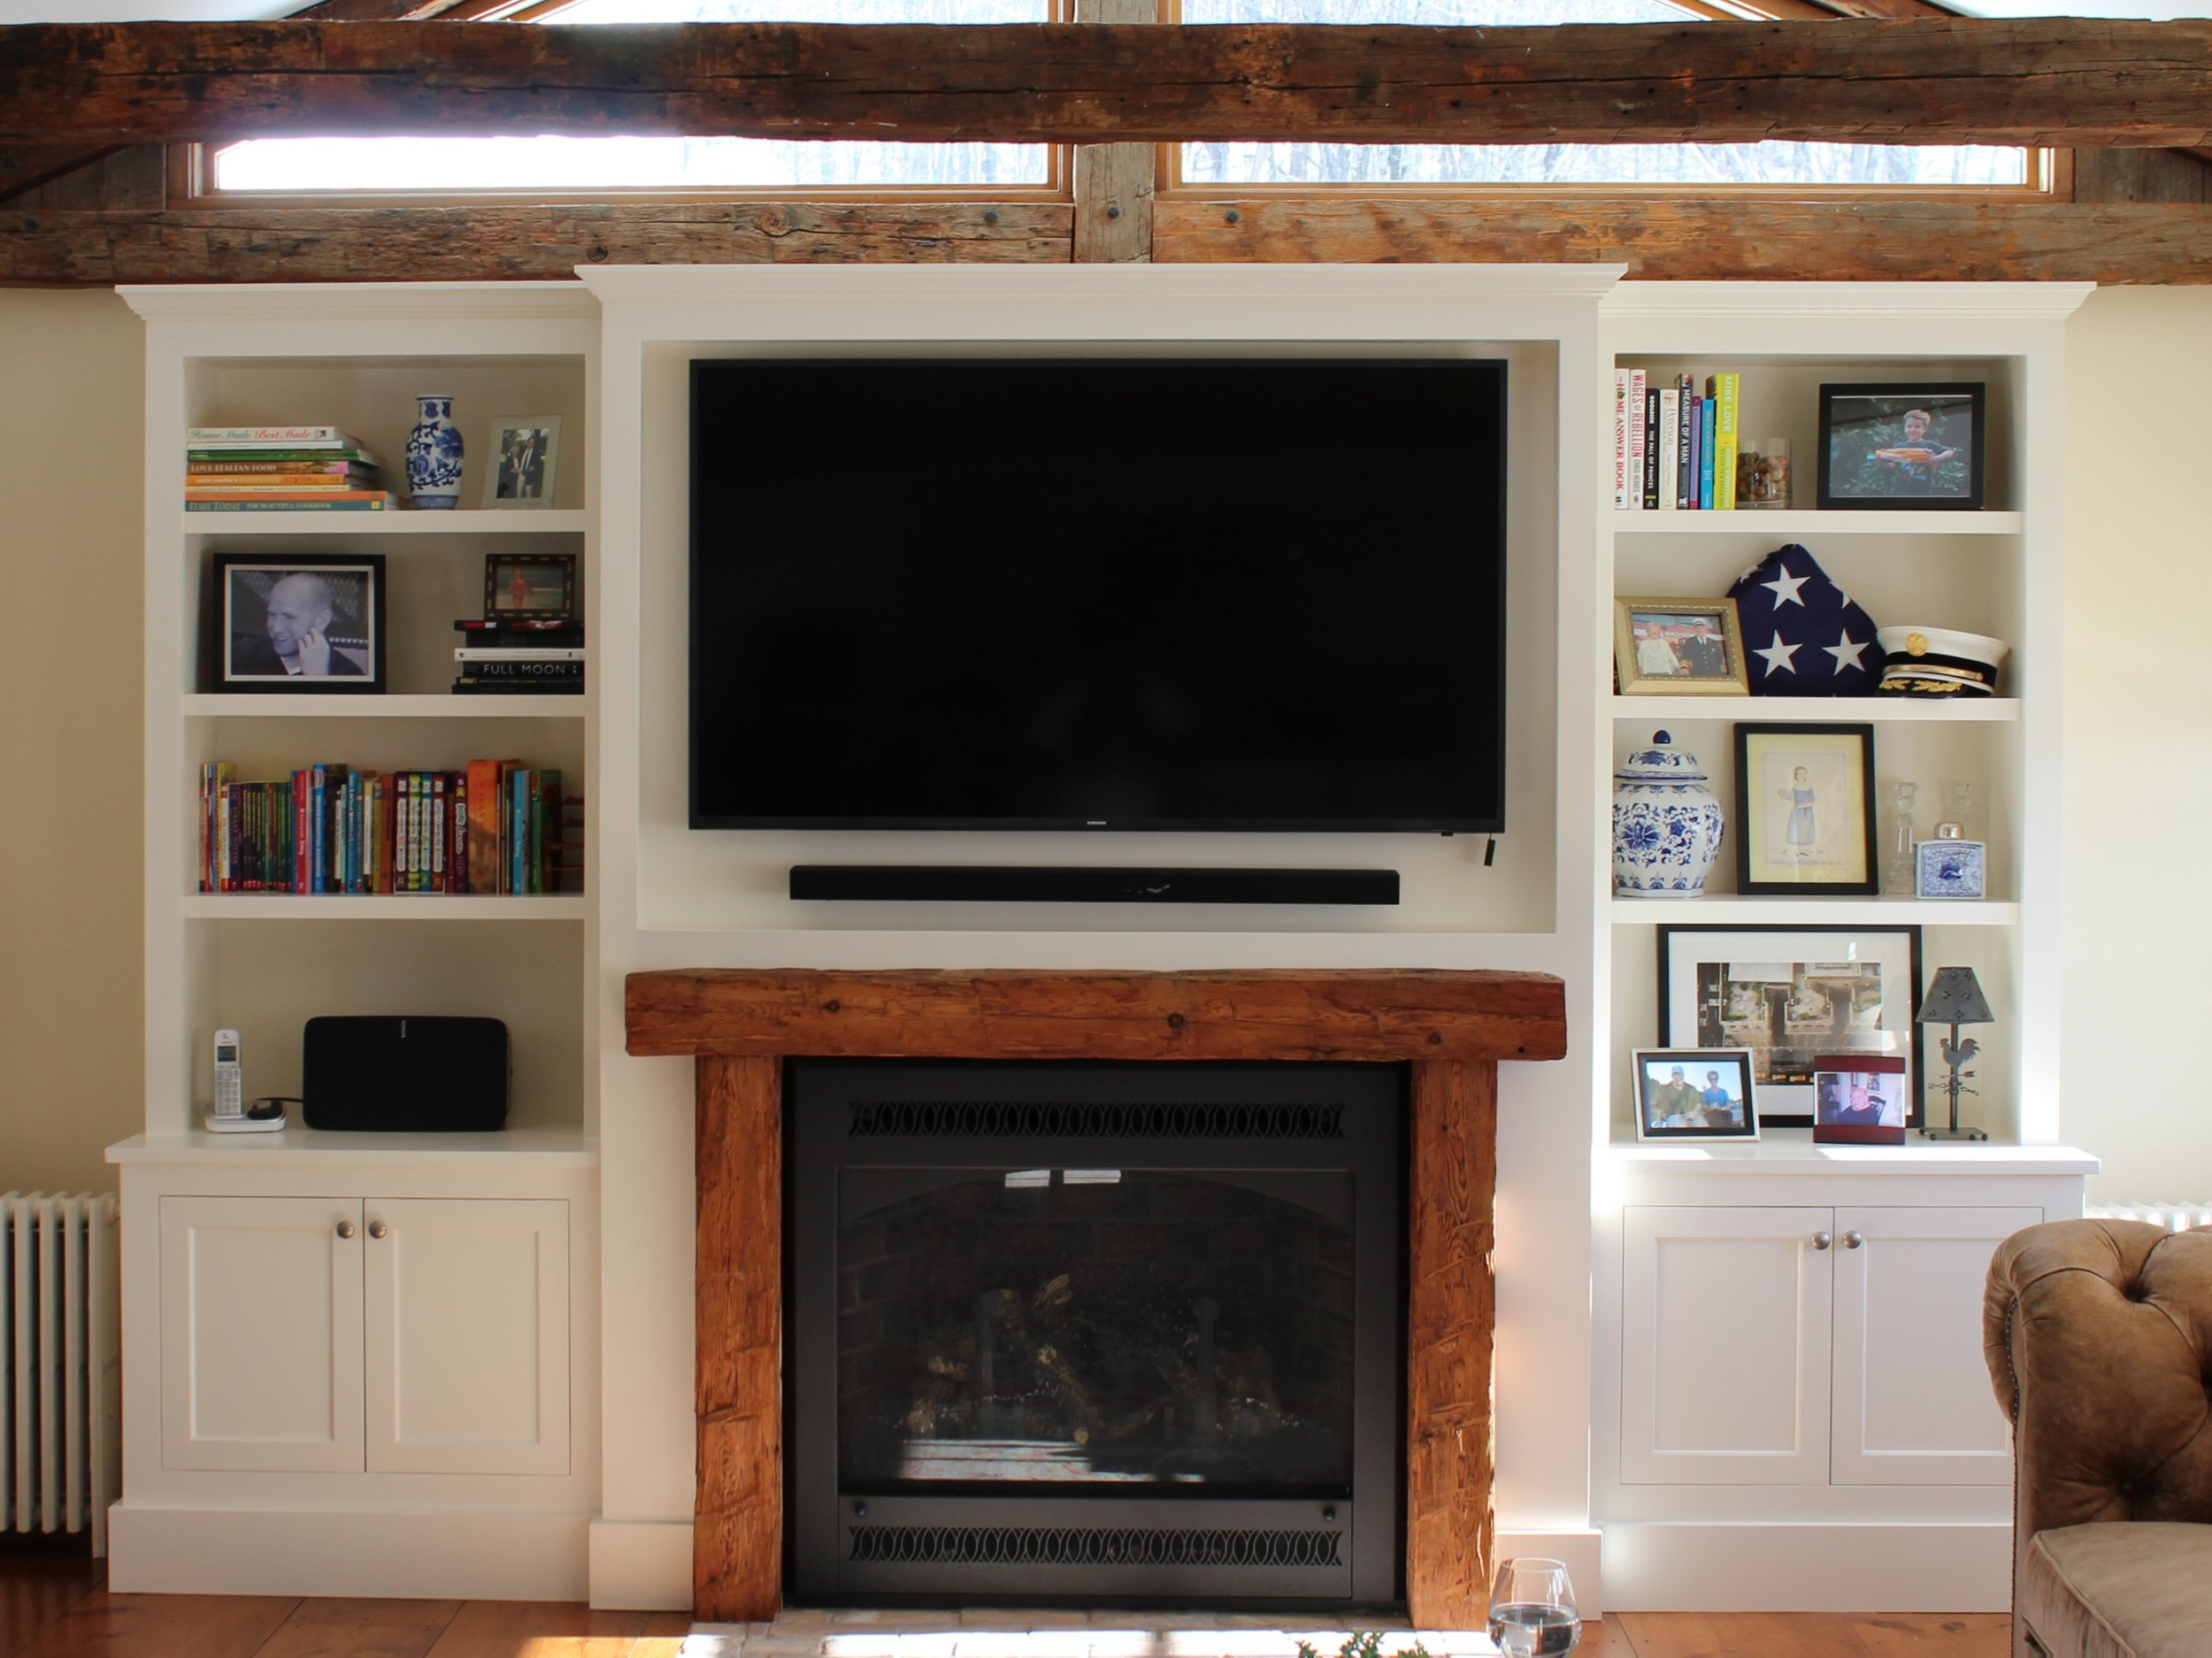 """What do you do when you want a fireplace but don't have a wall to put it on? Choose a gas insert either """"vent-less"""" or a """"direct vent"""". This client had only a TV on this large wall, but wanted a fireplace and a more cozy feel. We designed the built in bookcases to perfectly frame the TV and house a direct vent gas fireplace unit. The builder found the old beams to make the mantle. We are happy with how this turned out and so is the client!"""